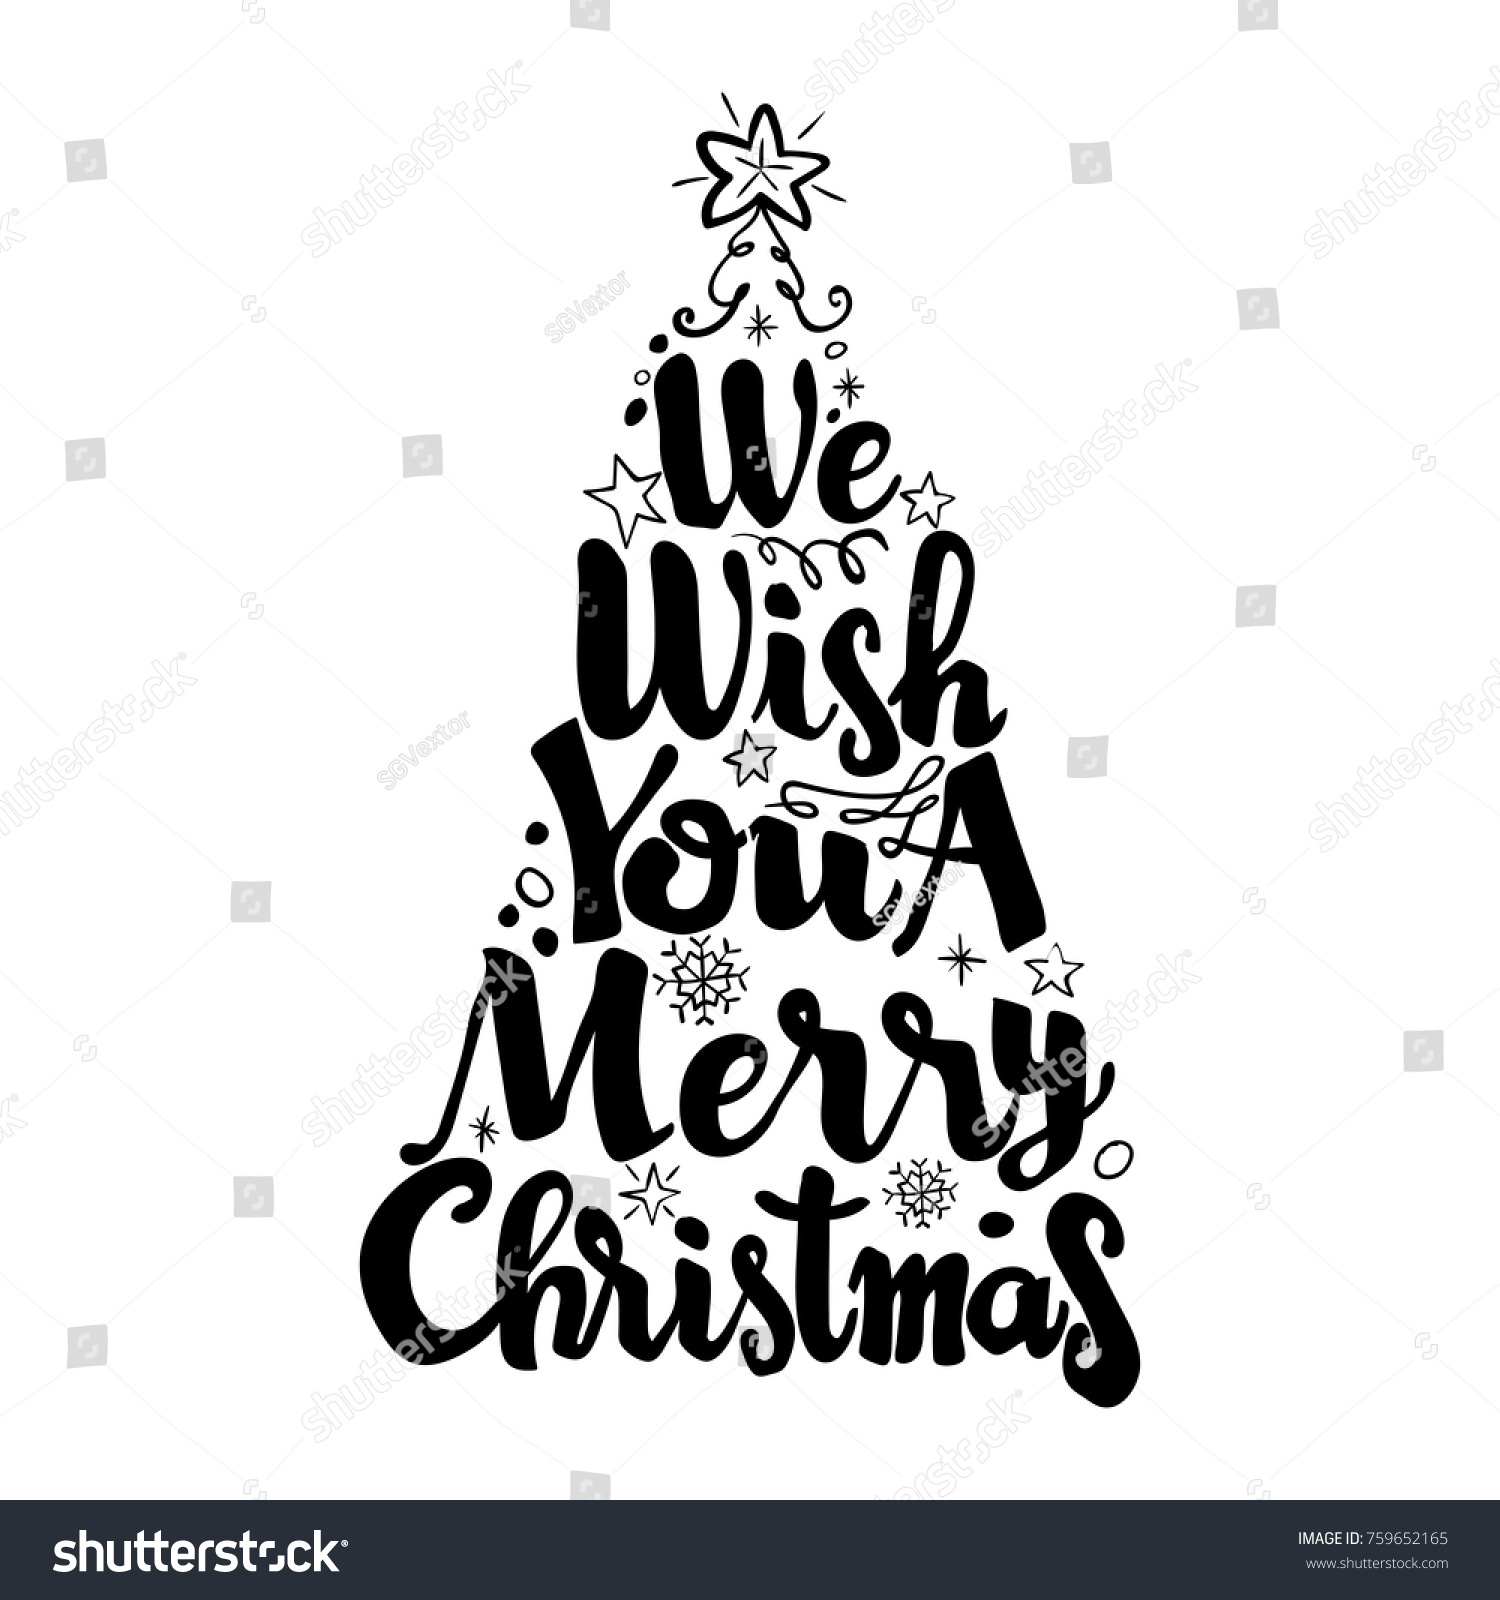 We Wish You Merry Christmas Isolate Stock Vector (Royalty Free ...